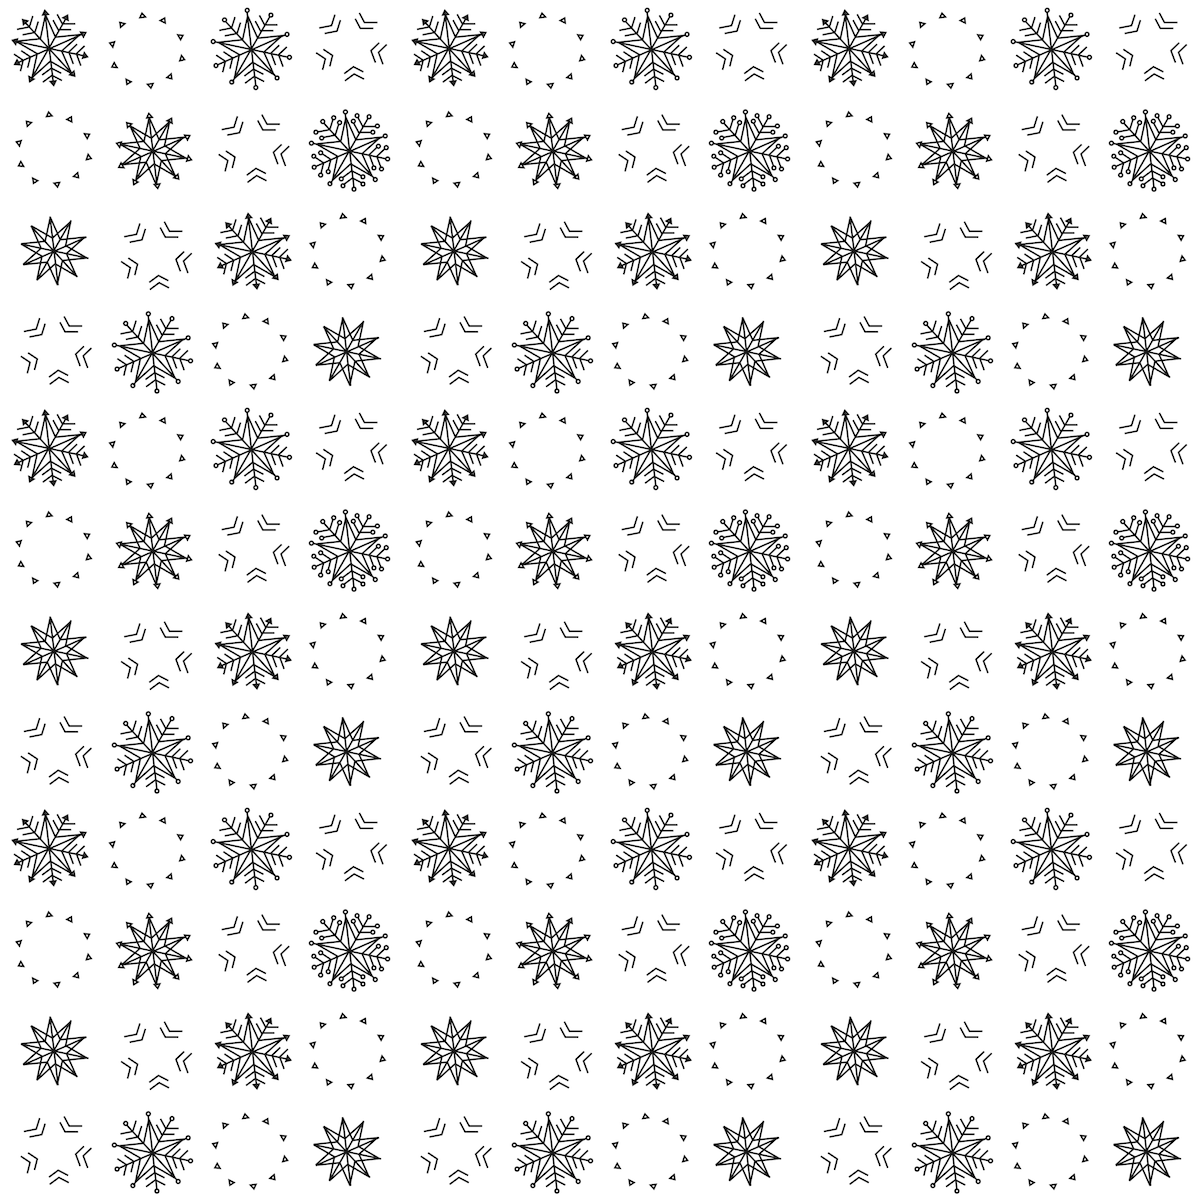 Scrapbook paper black and white